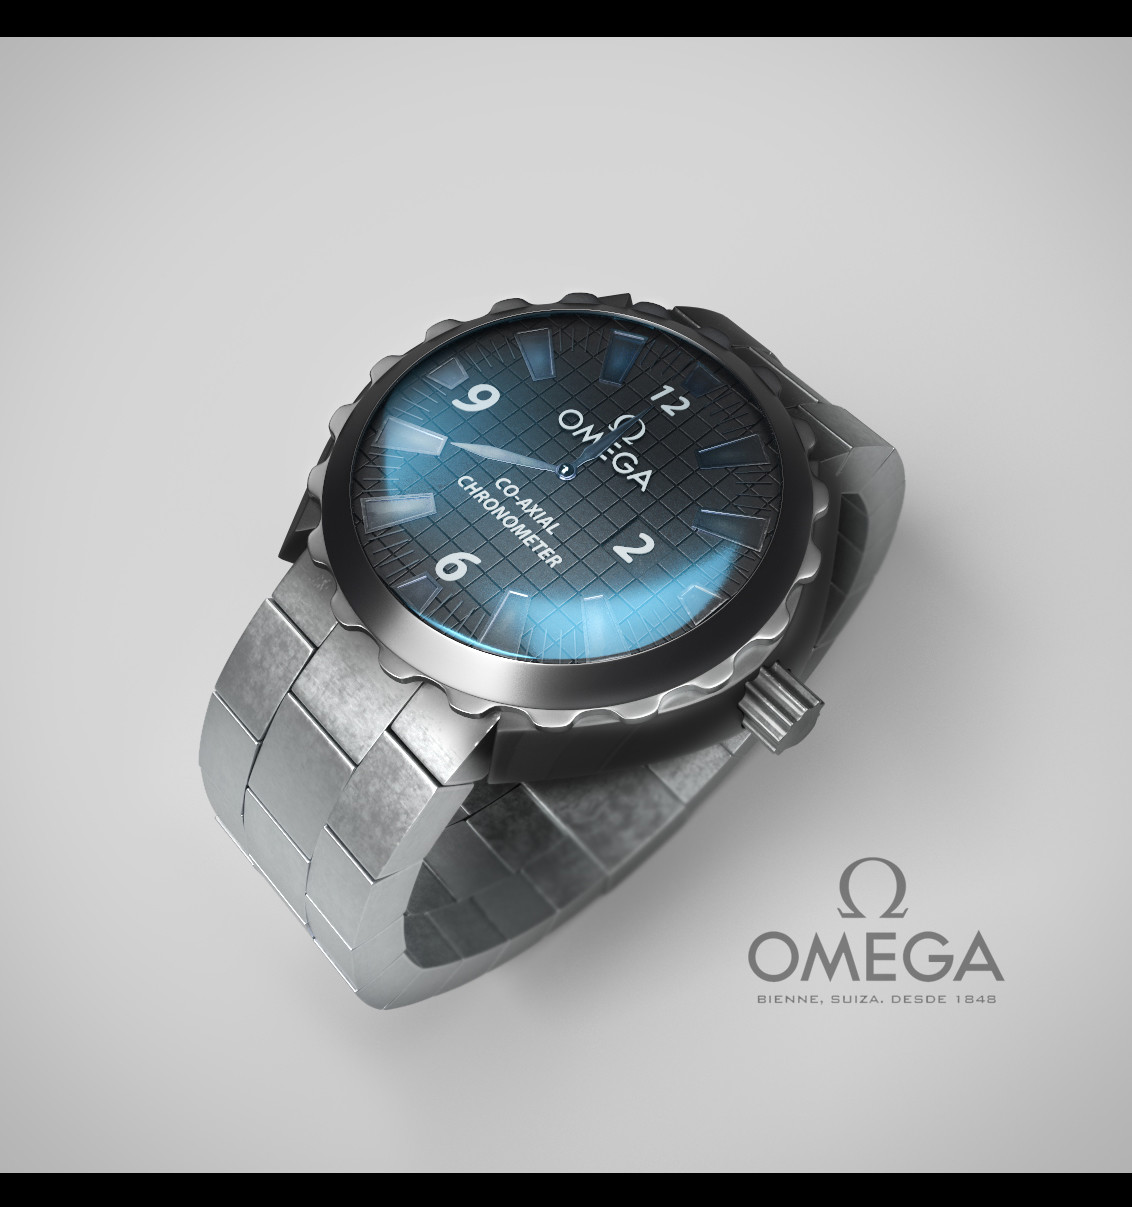 Watch 3d Render